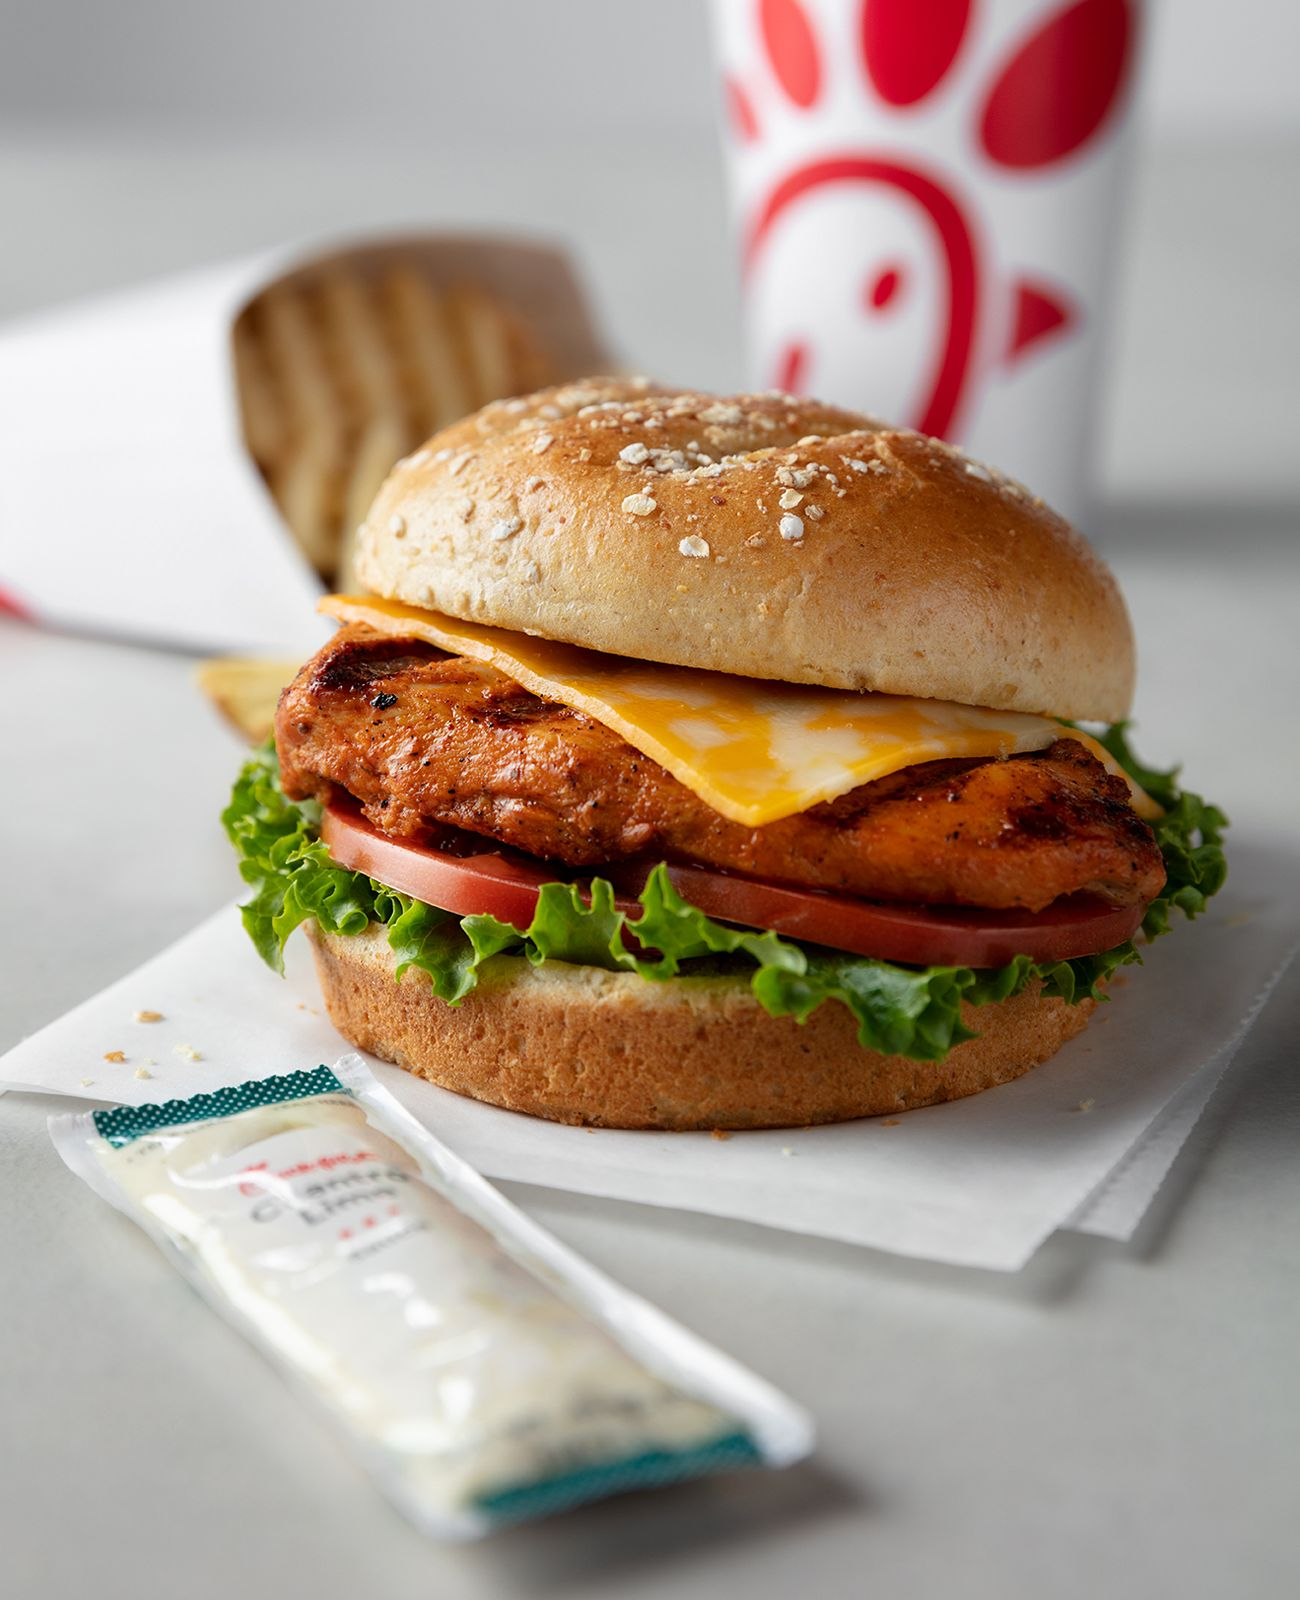 New Year, New Flavors: Chick-fil-A Heats Up Menu with Grilled Spicy Chicken Deluxe Sandwich